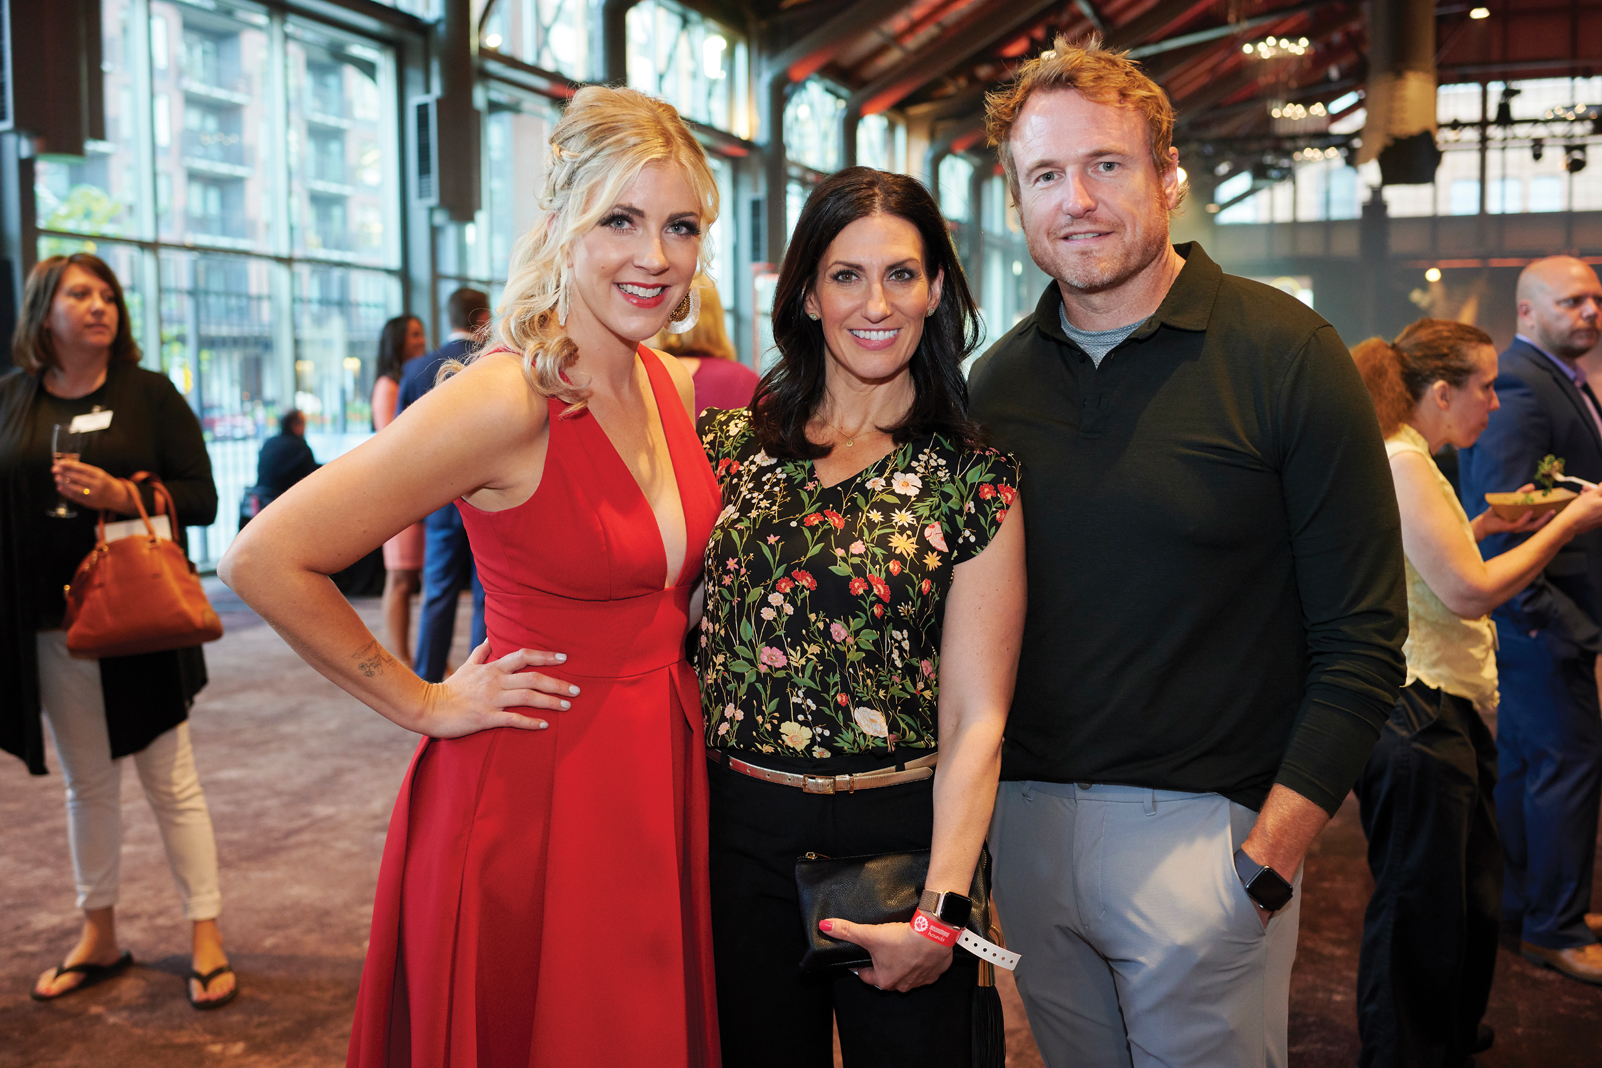 From left: Rachel Mairose, Rena Sarigianopoulos, Scott Grabick at the Bone Appetit Gala